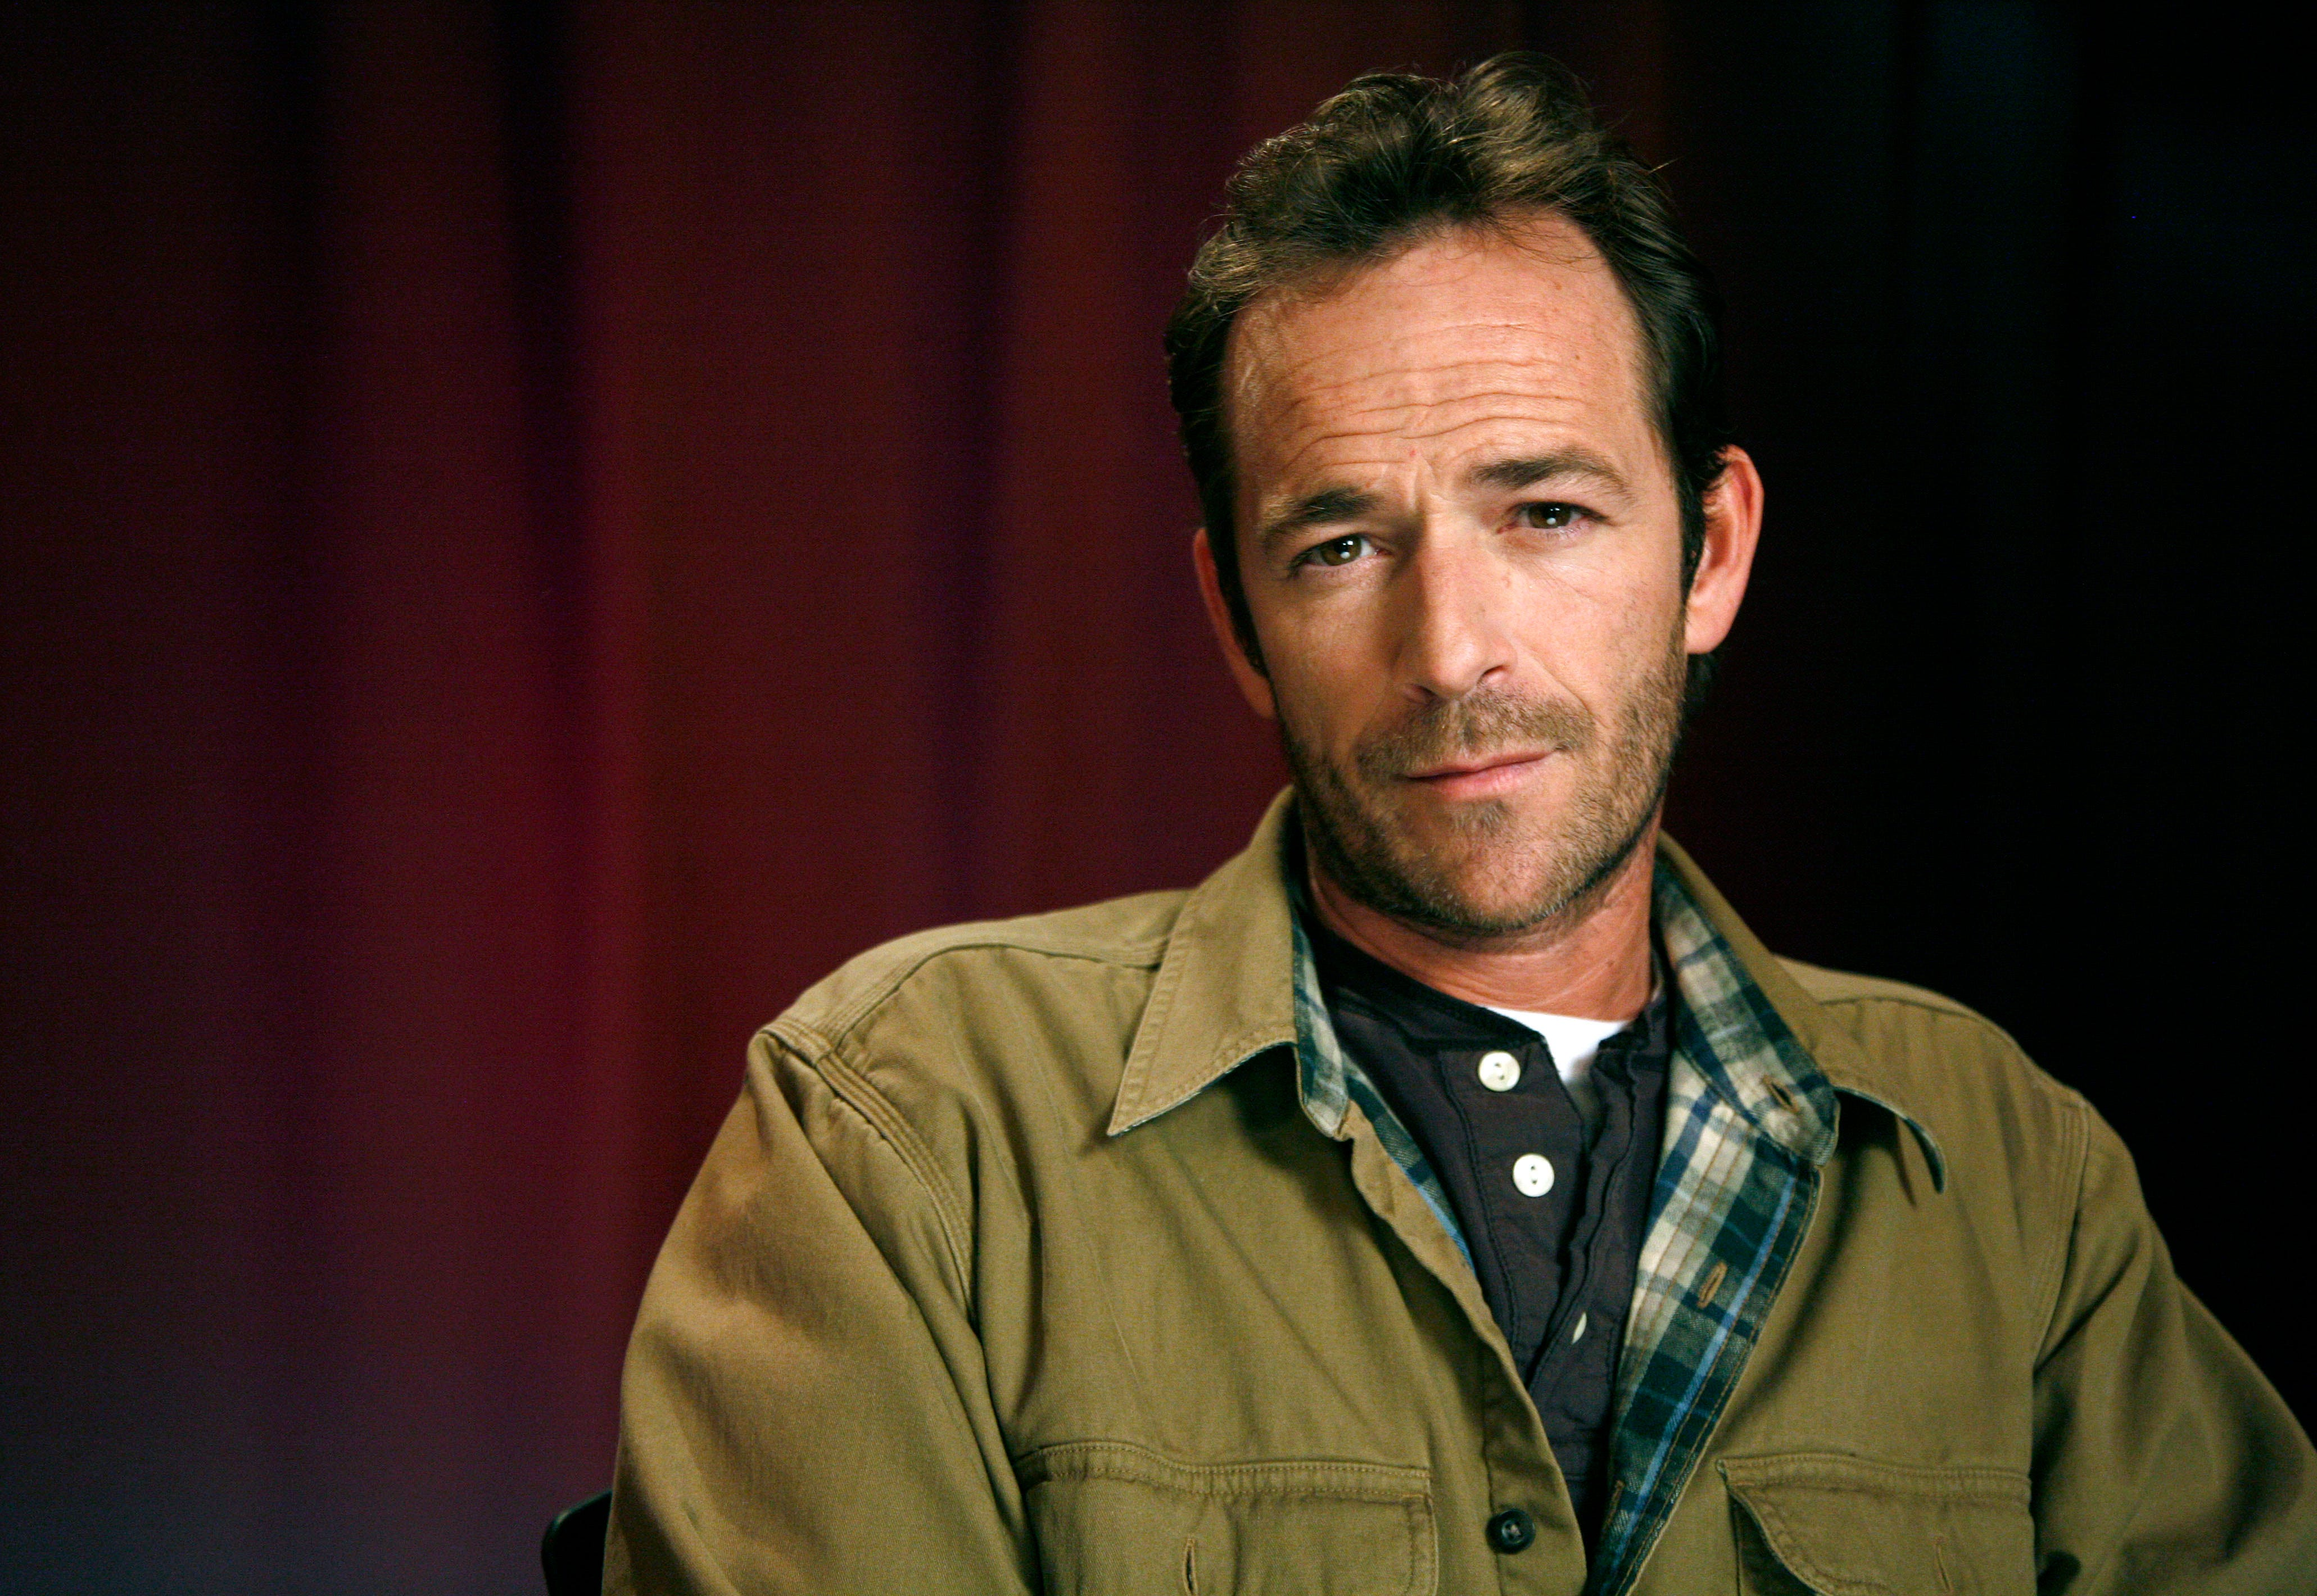 """In this Jan. 26, 2011 file photo, actor Luke Perry poses for a portrait in New York. Perry, who gained instant heartthrob status as wealthy rebel Dylan McKay on """"Beverly Hills, 90210,"""" died Monday, March 4, 2019, after suffering a massive stroke, his publicist said. He was 52."""